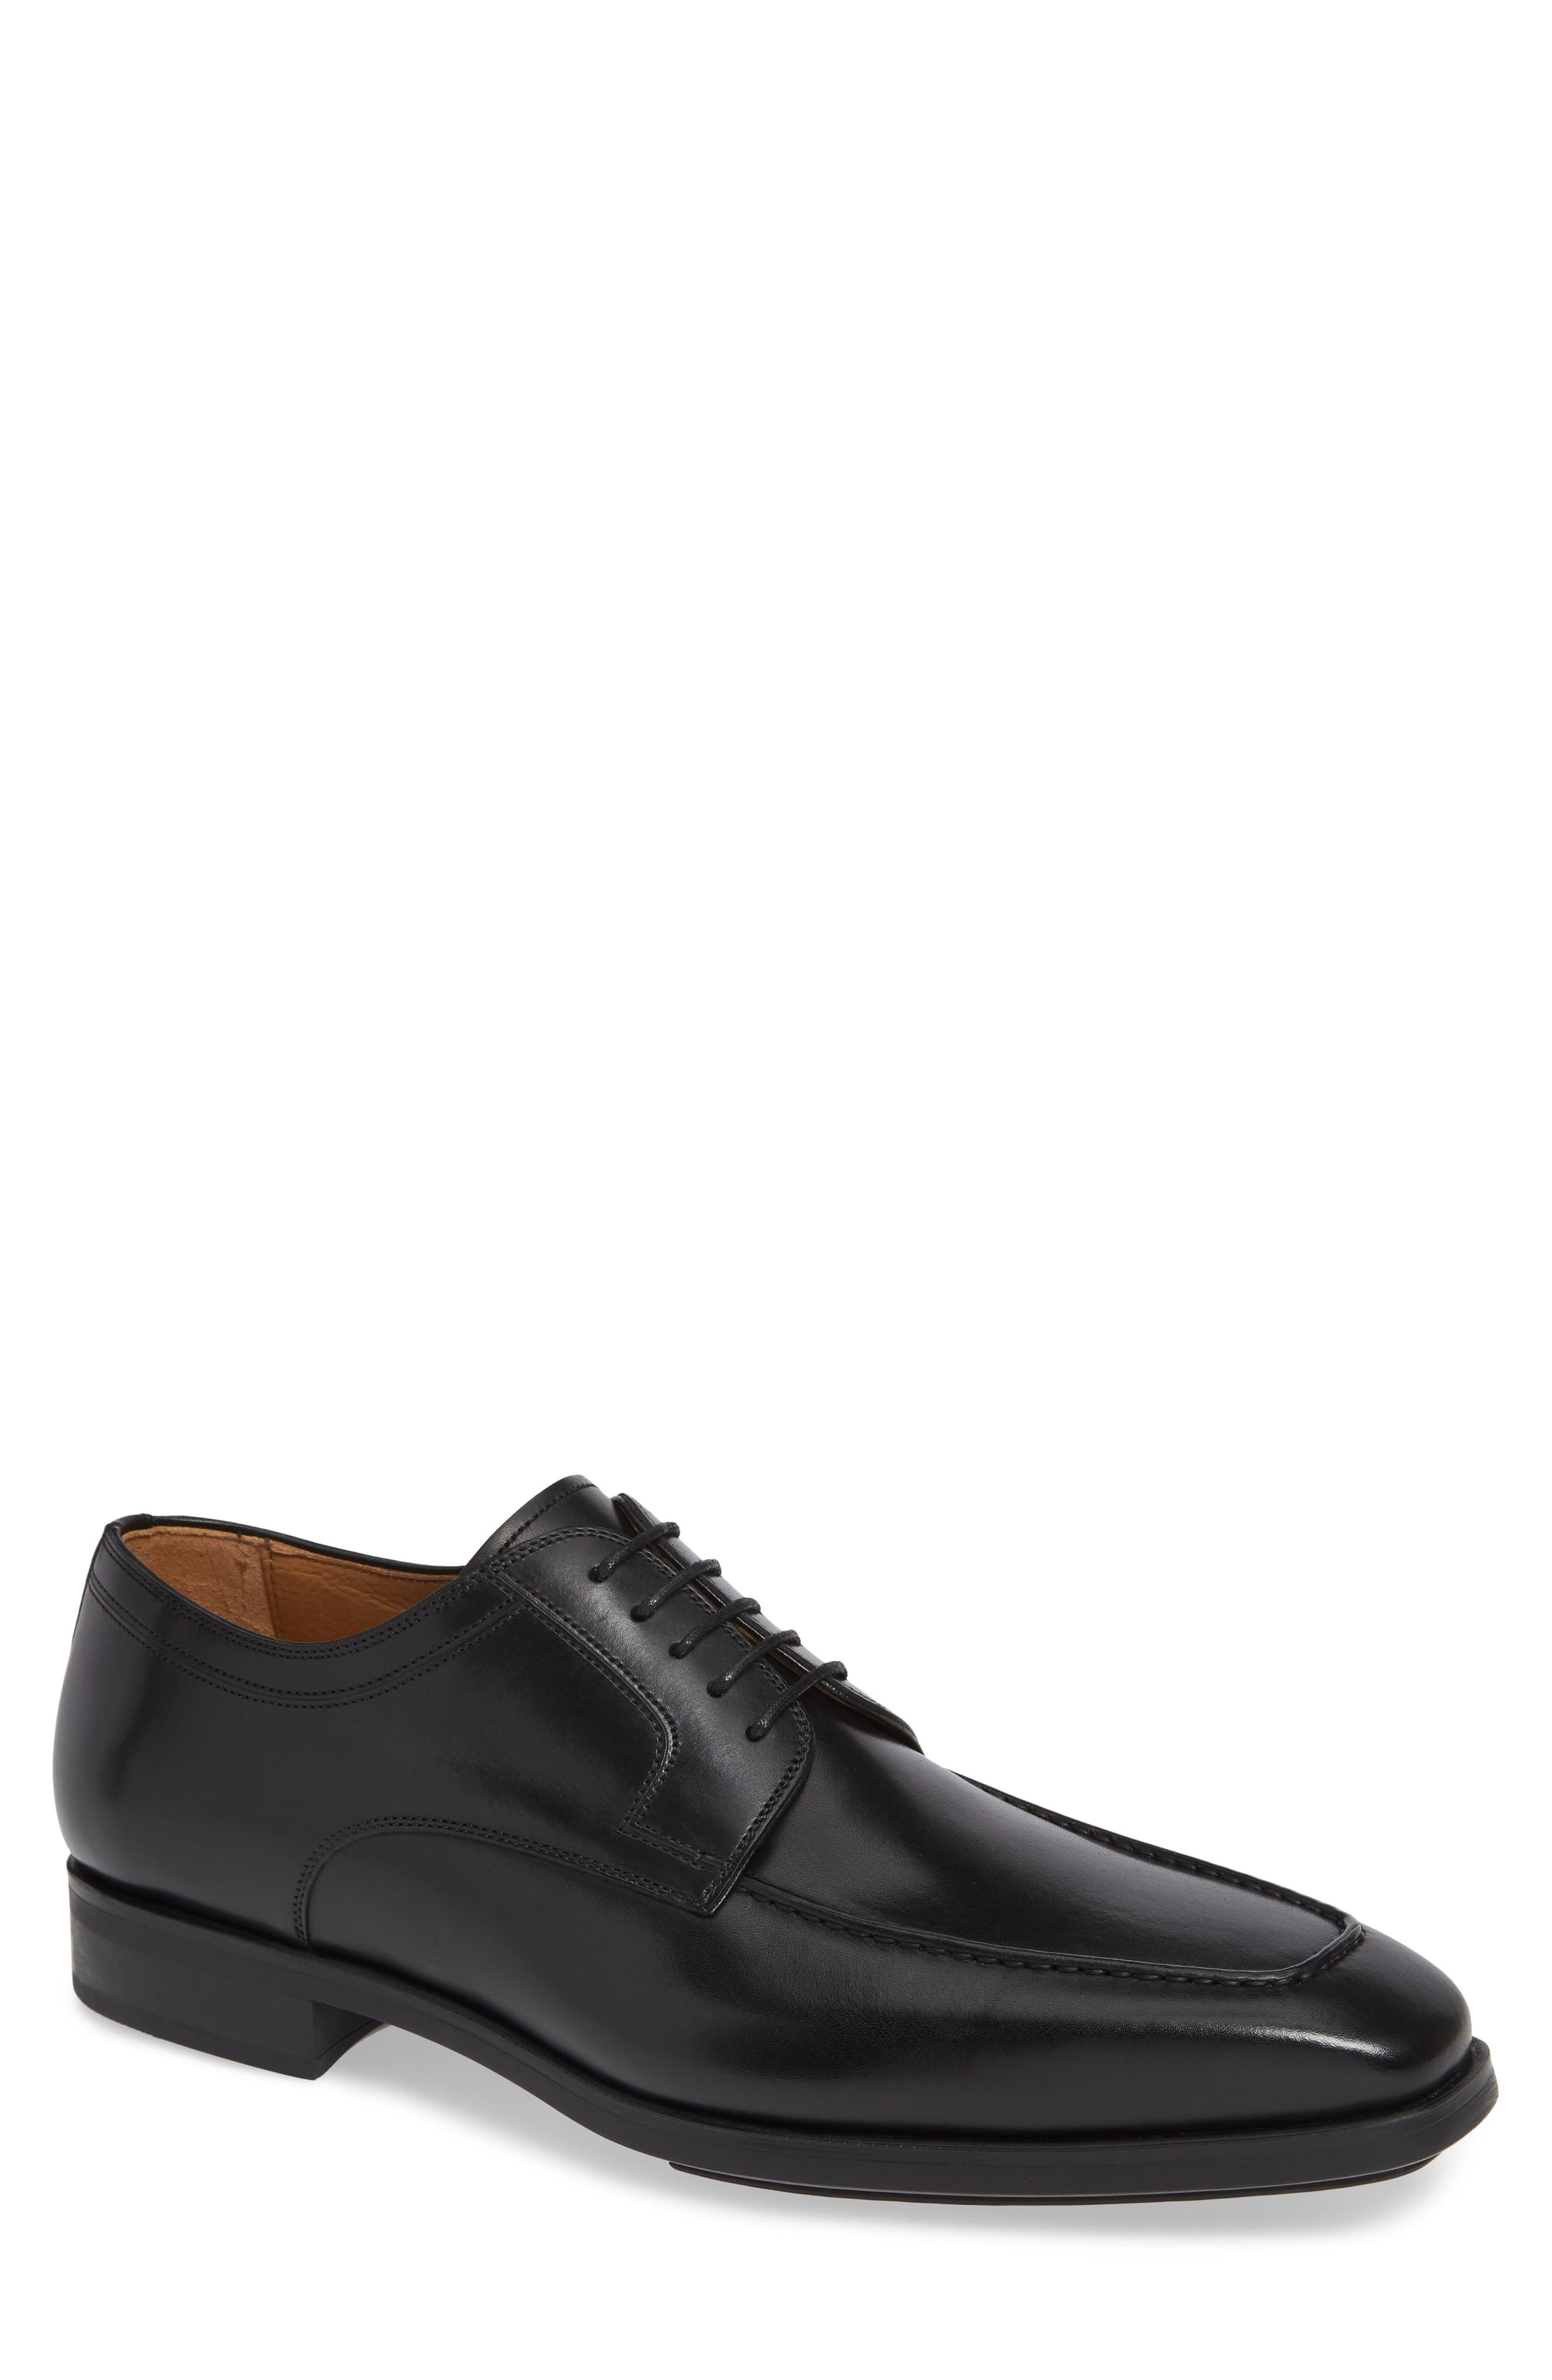 MAGNANNI Diversa Romelo Apron Toe Derby, Main, color, BLACK LEATHER